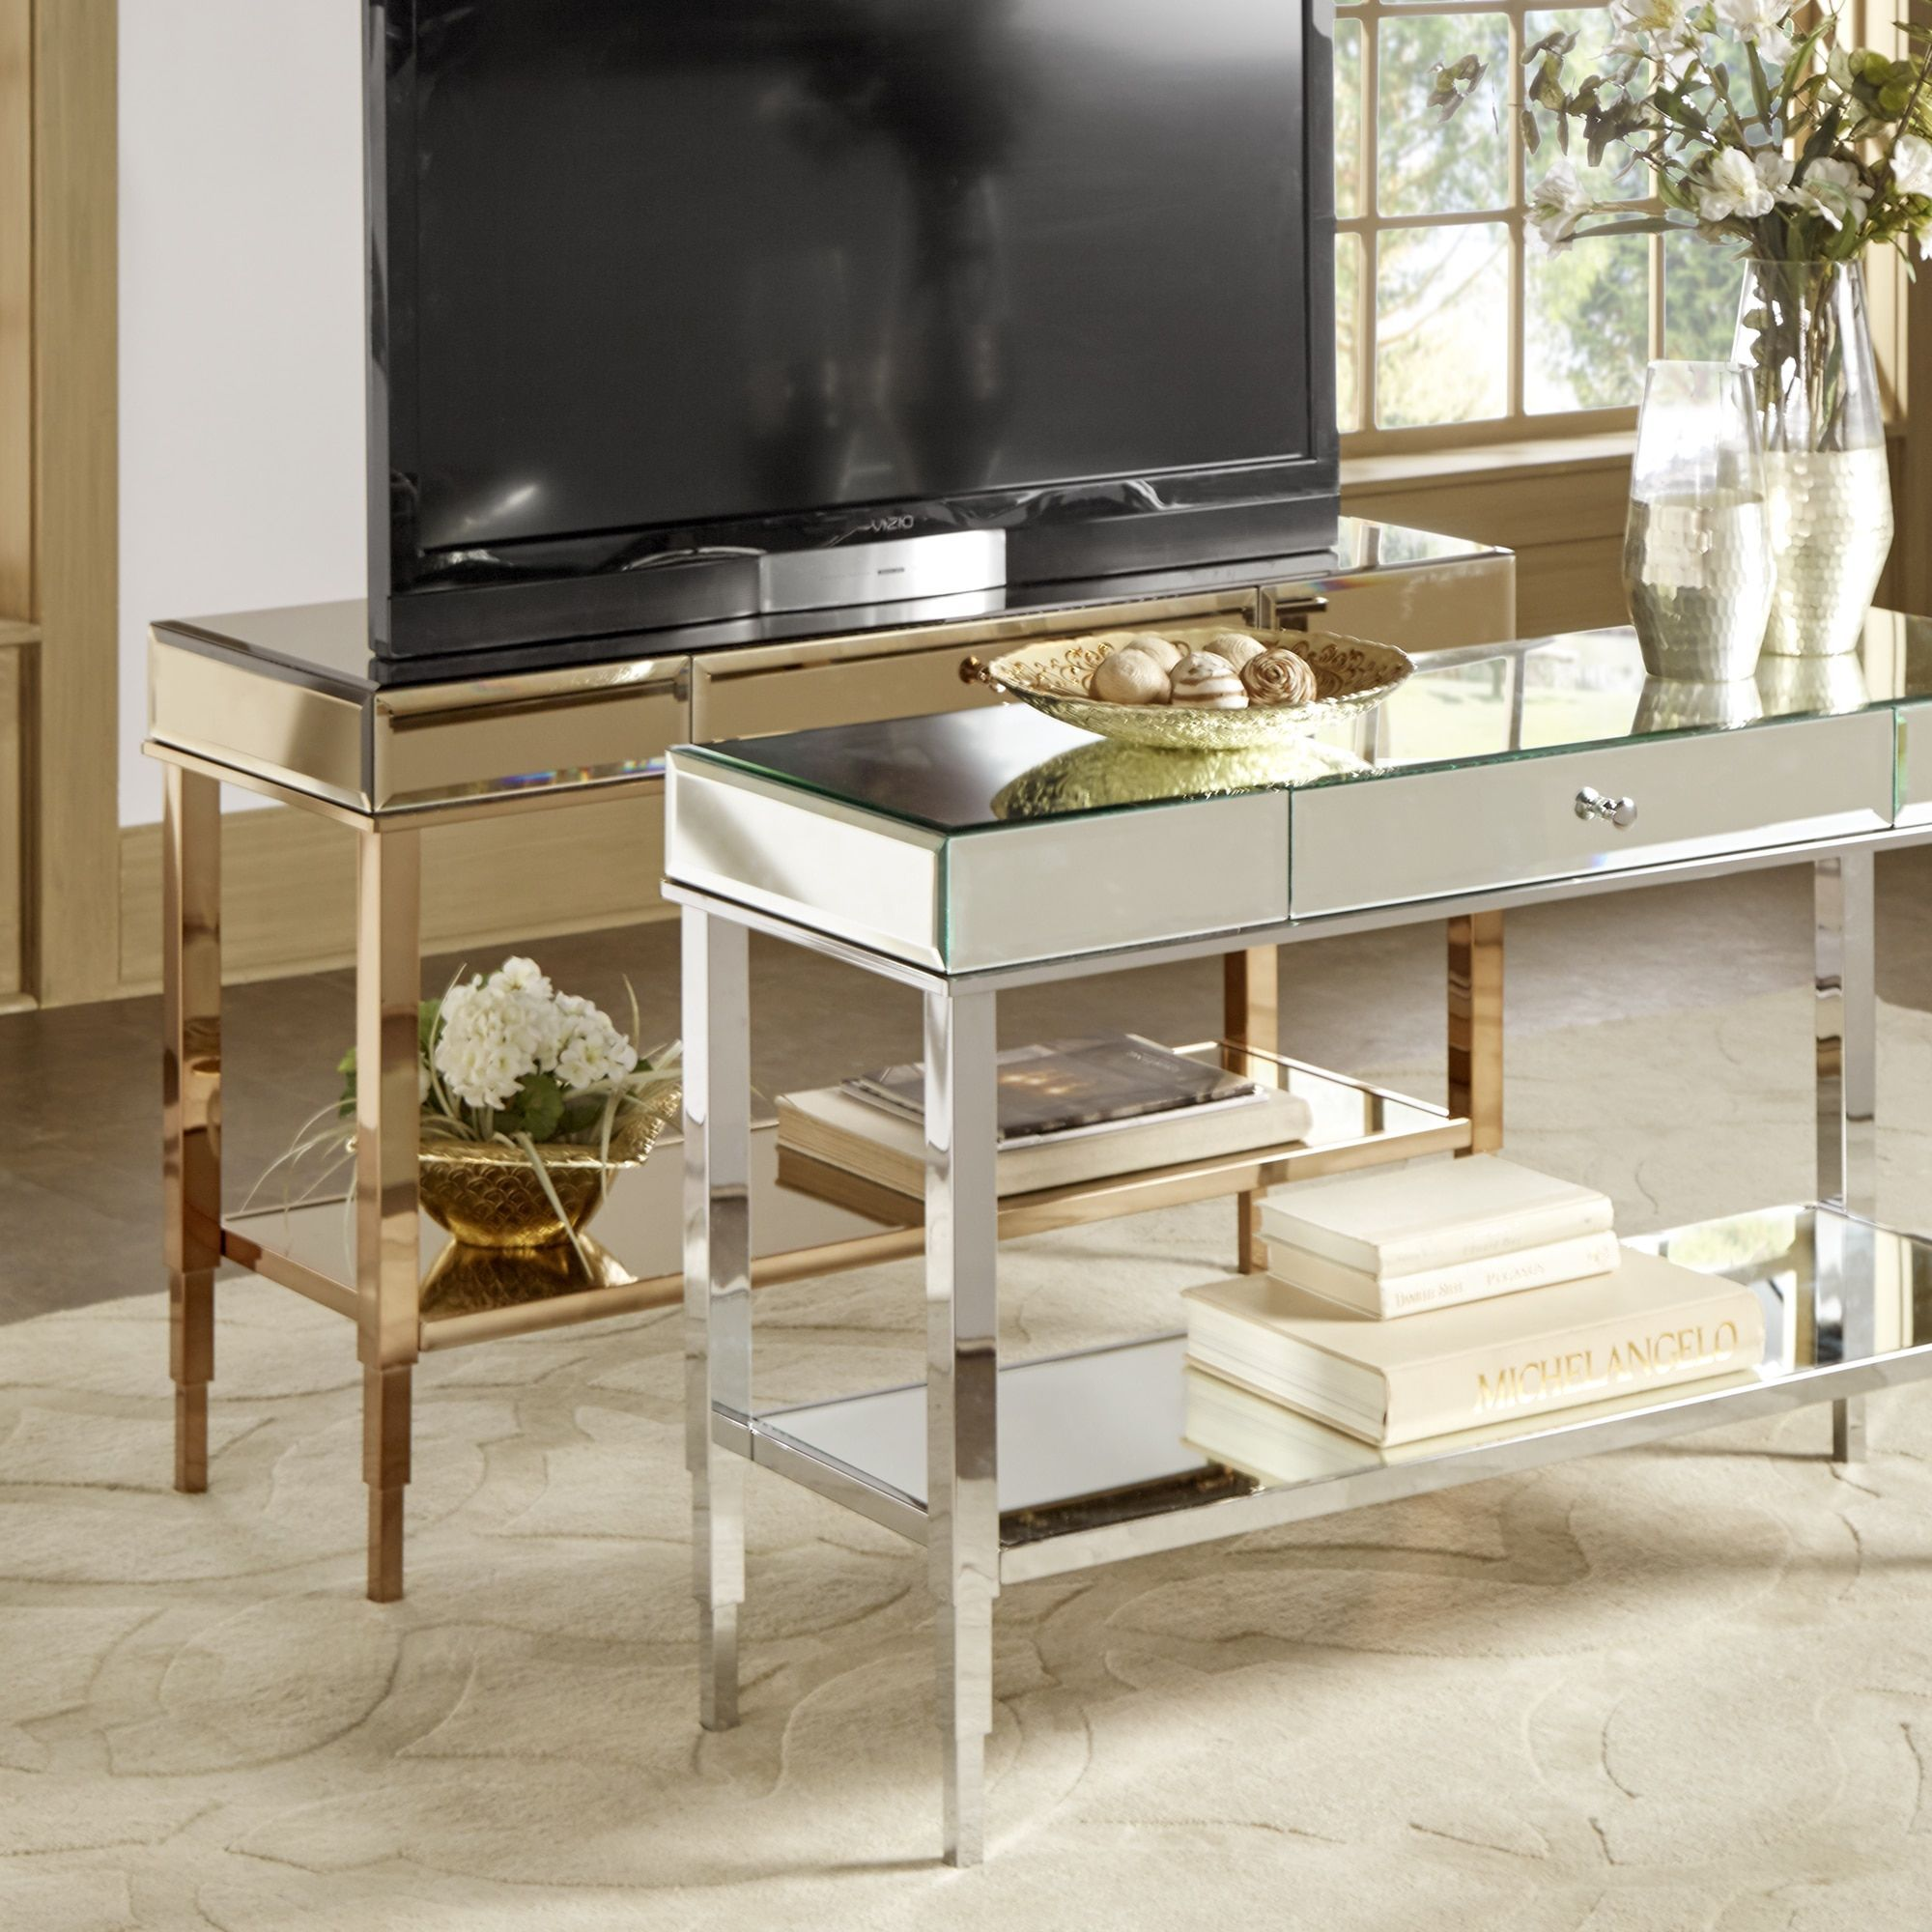 Camille Glam Mirrored TV Stand Console Table with Drawer by Inspire Q  (Champagne Gold) 2288d1904c23